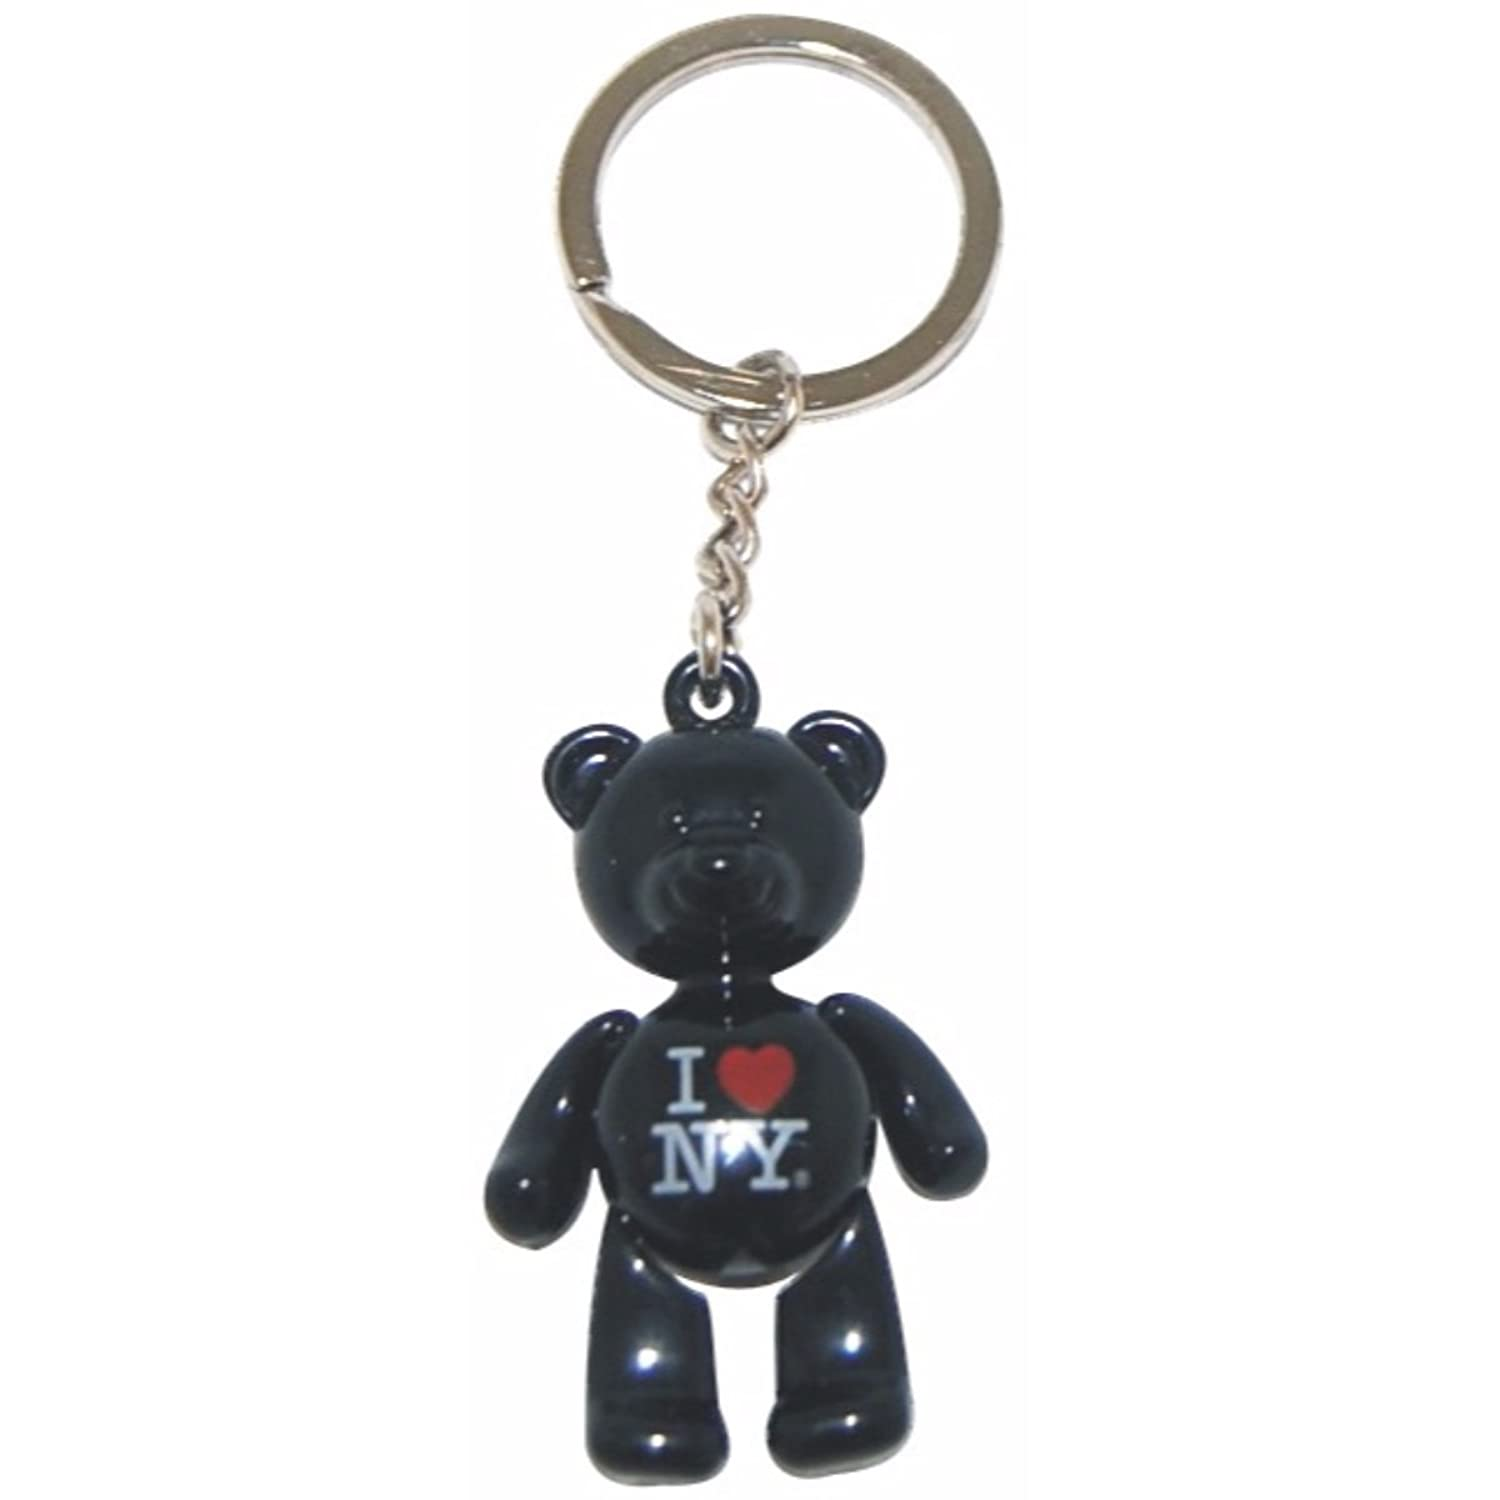 Amazon.com: 5 Metal New York City Teddy Bear Keychains (I ...